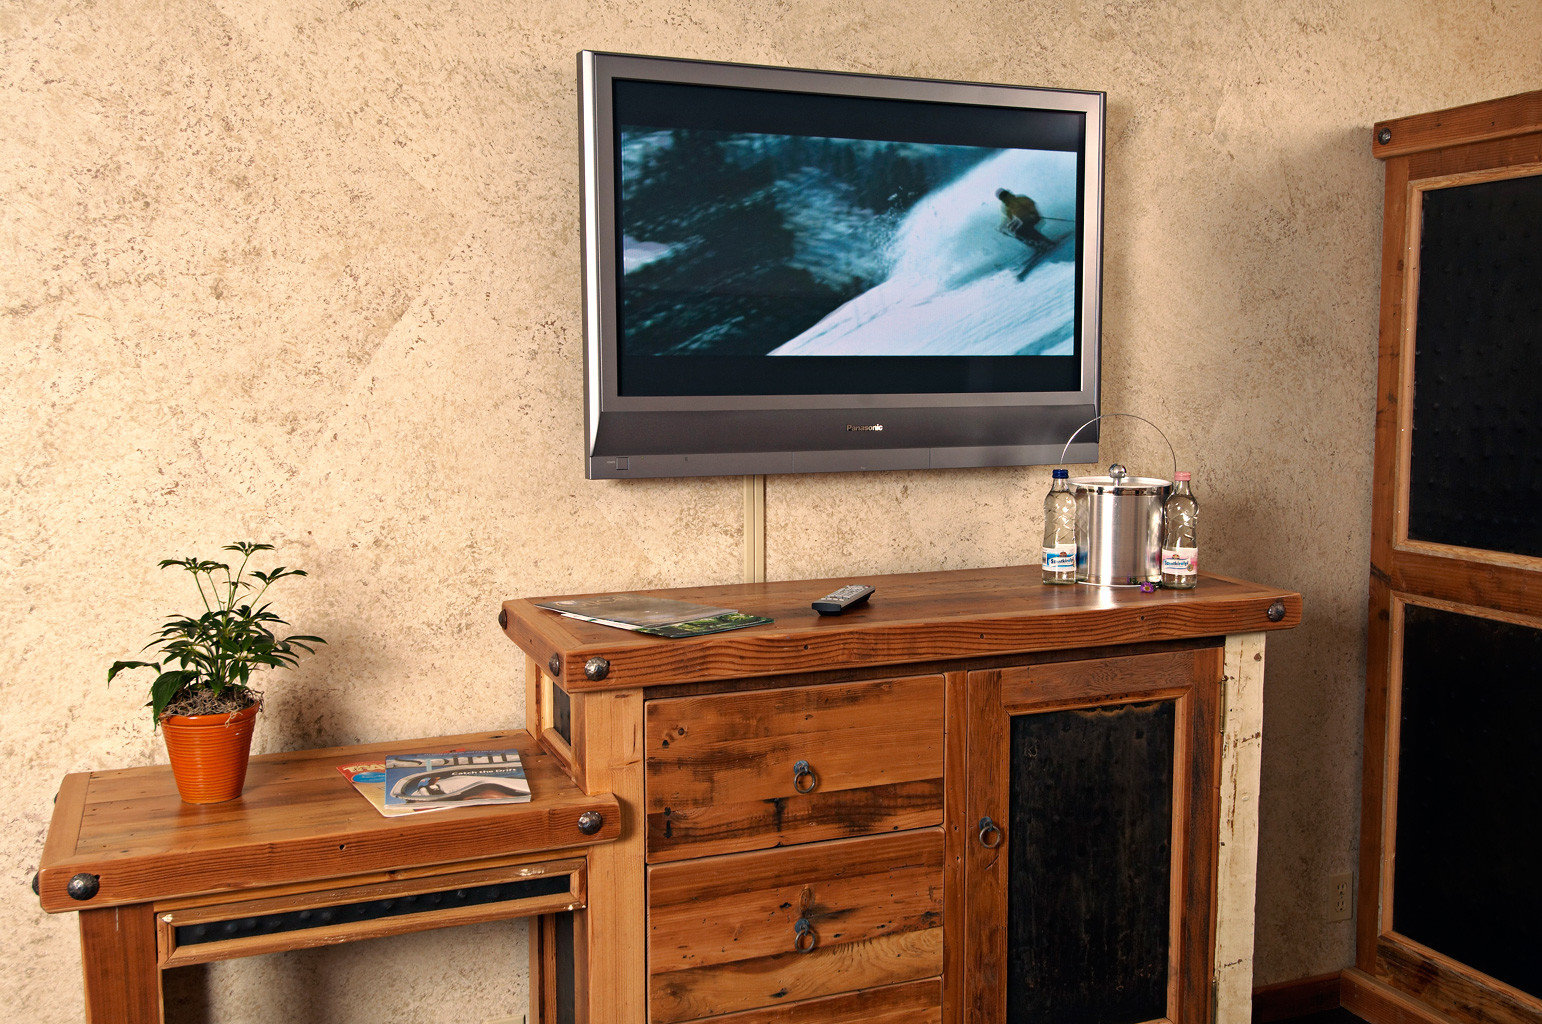 Eco Rustic television desk cabinetry home living room